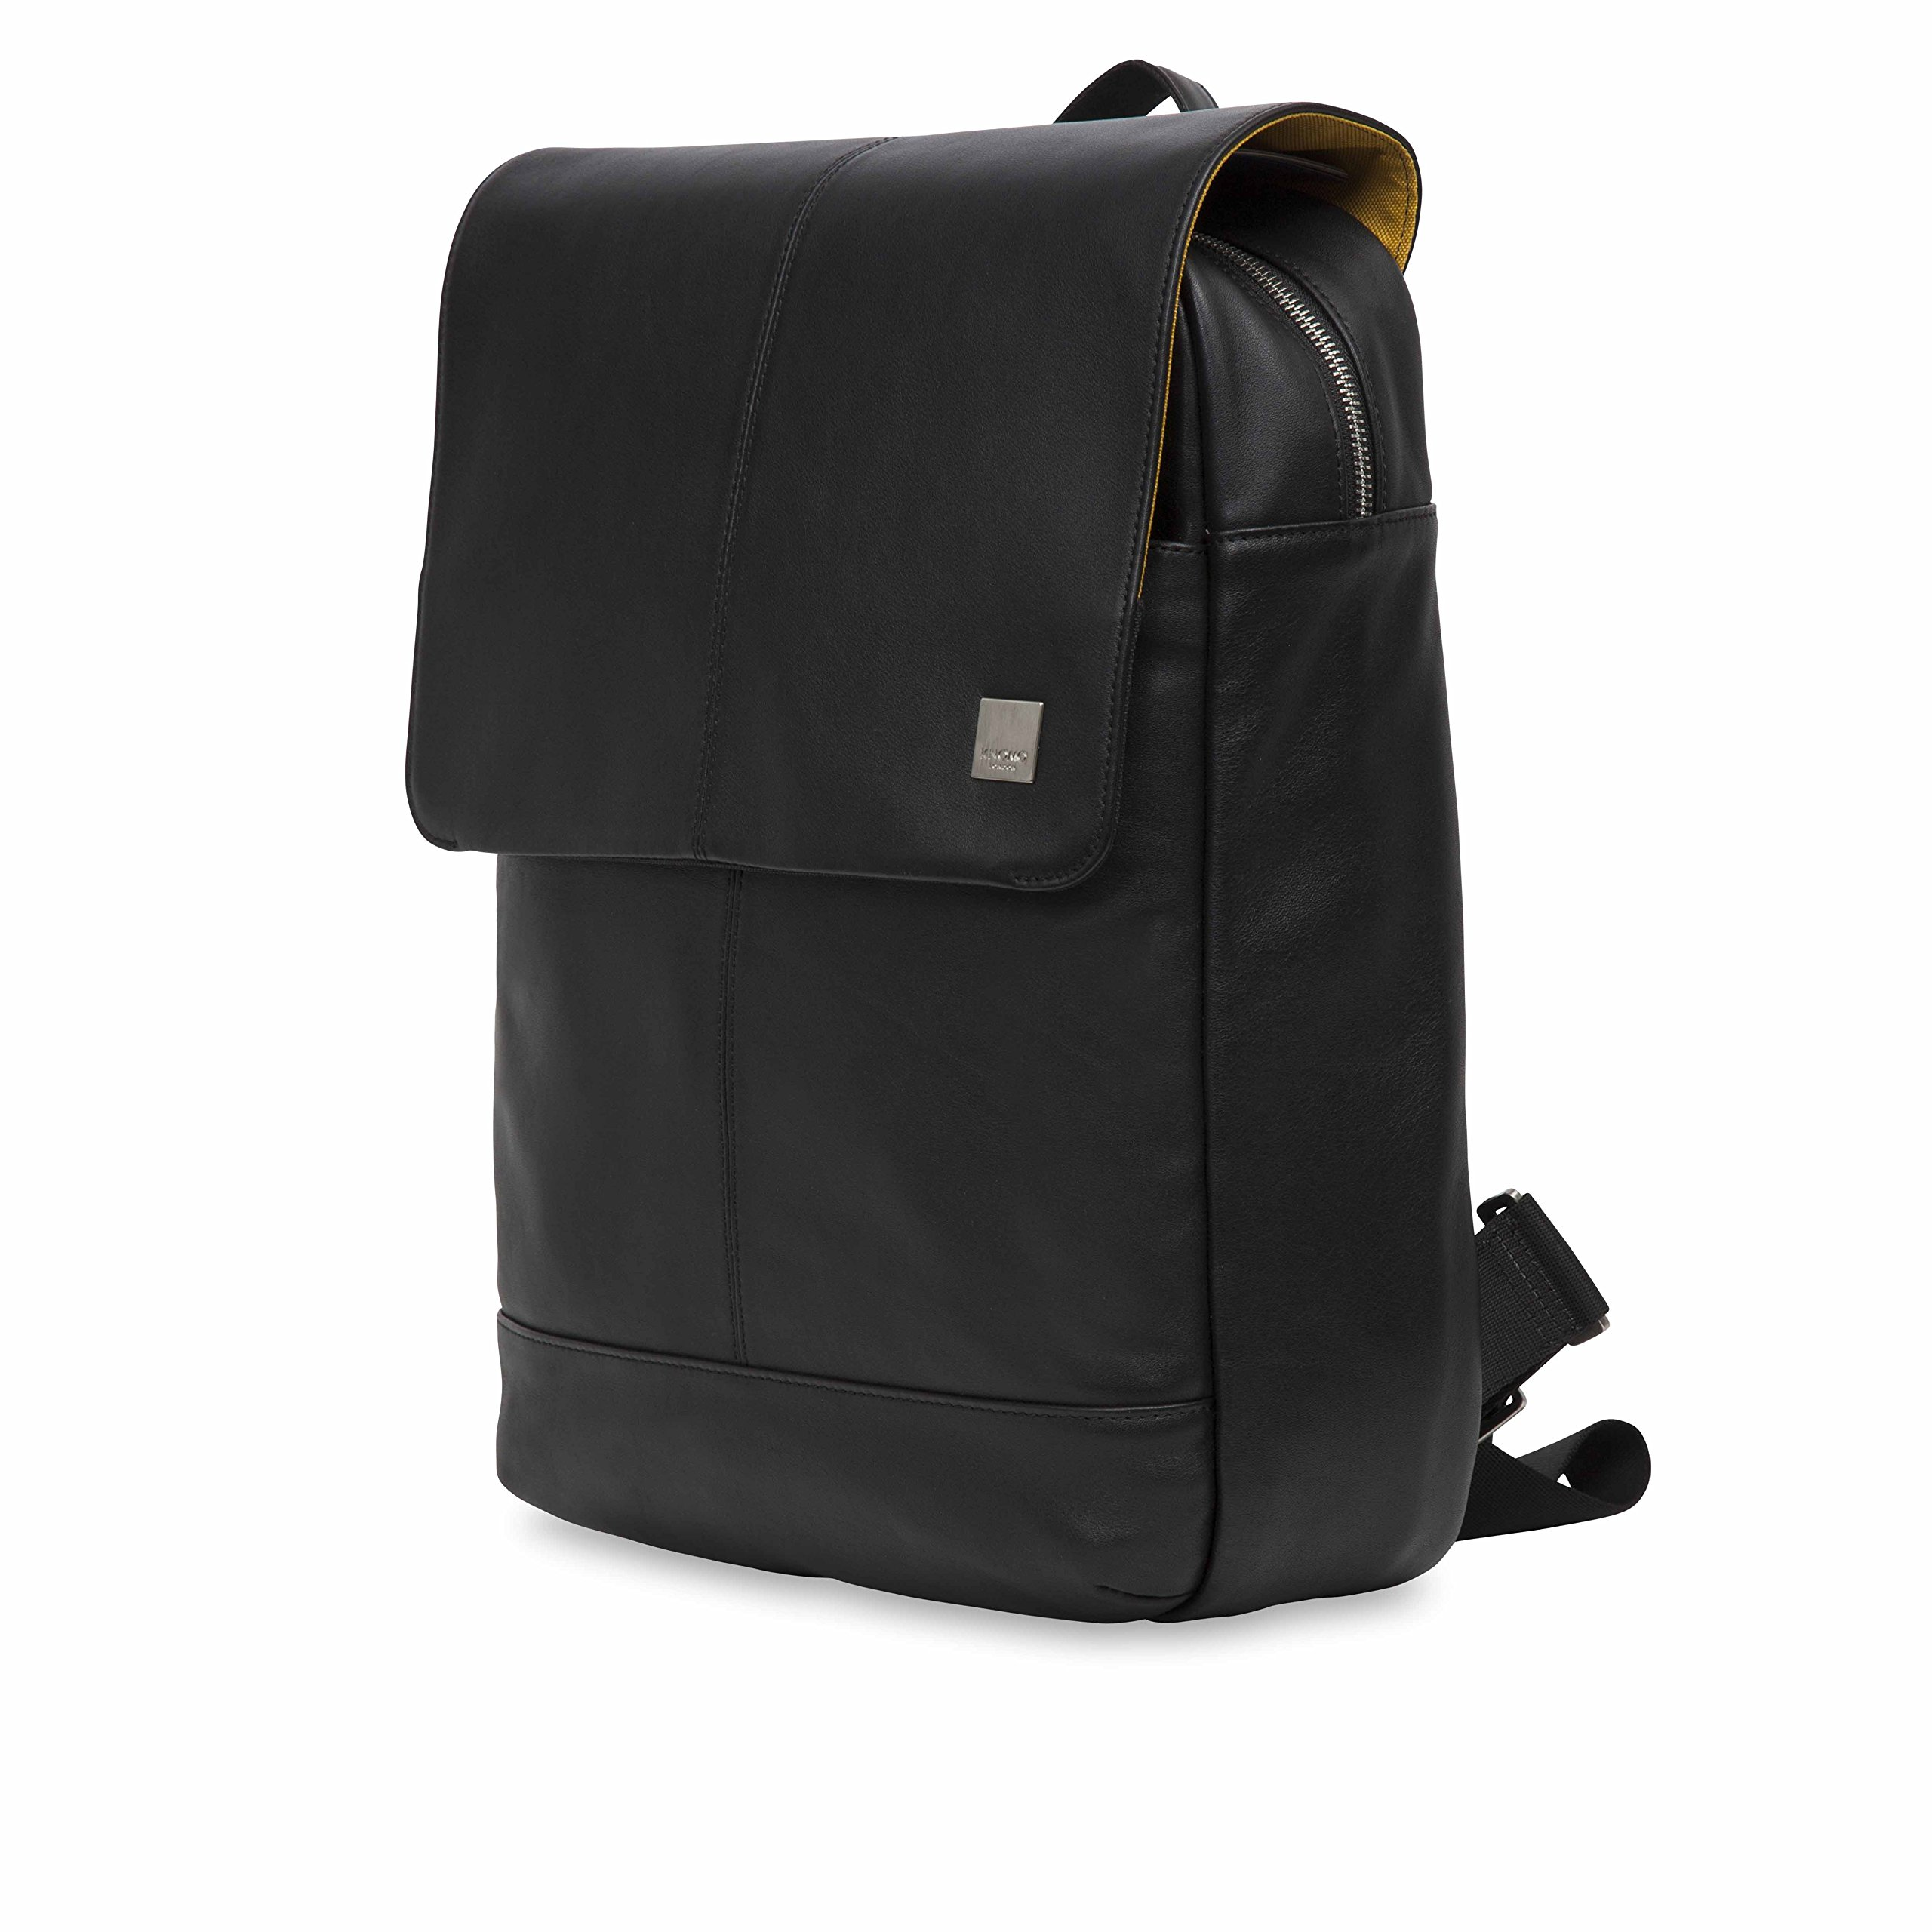 Knomo Luggage Men's Knomo Brompton Classic Hudson 15.6'' Business Backpack, Black, One Size by Knomo